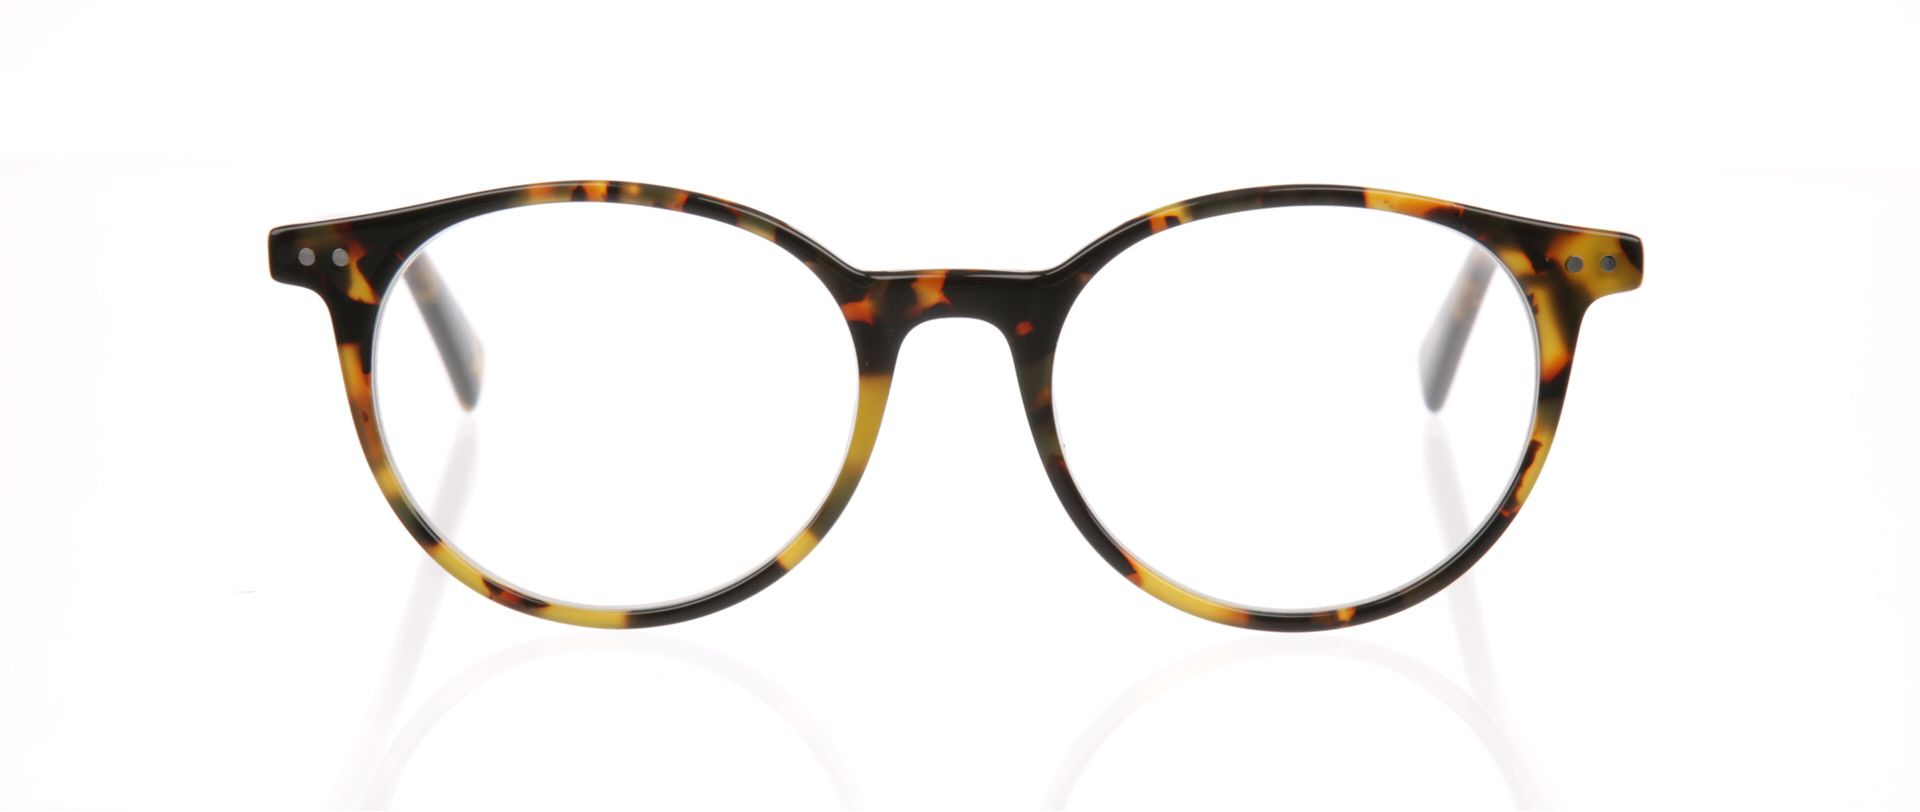 63230ec65e4 The Case Closed All Day Reader is reading glasses reinvented